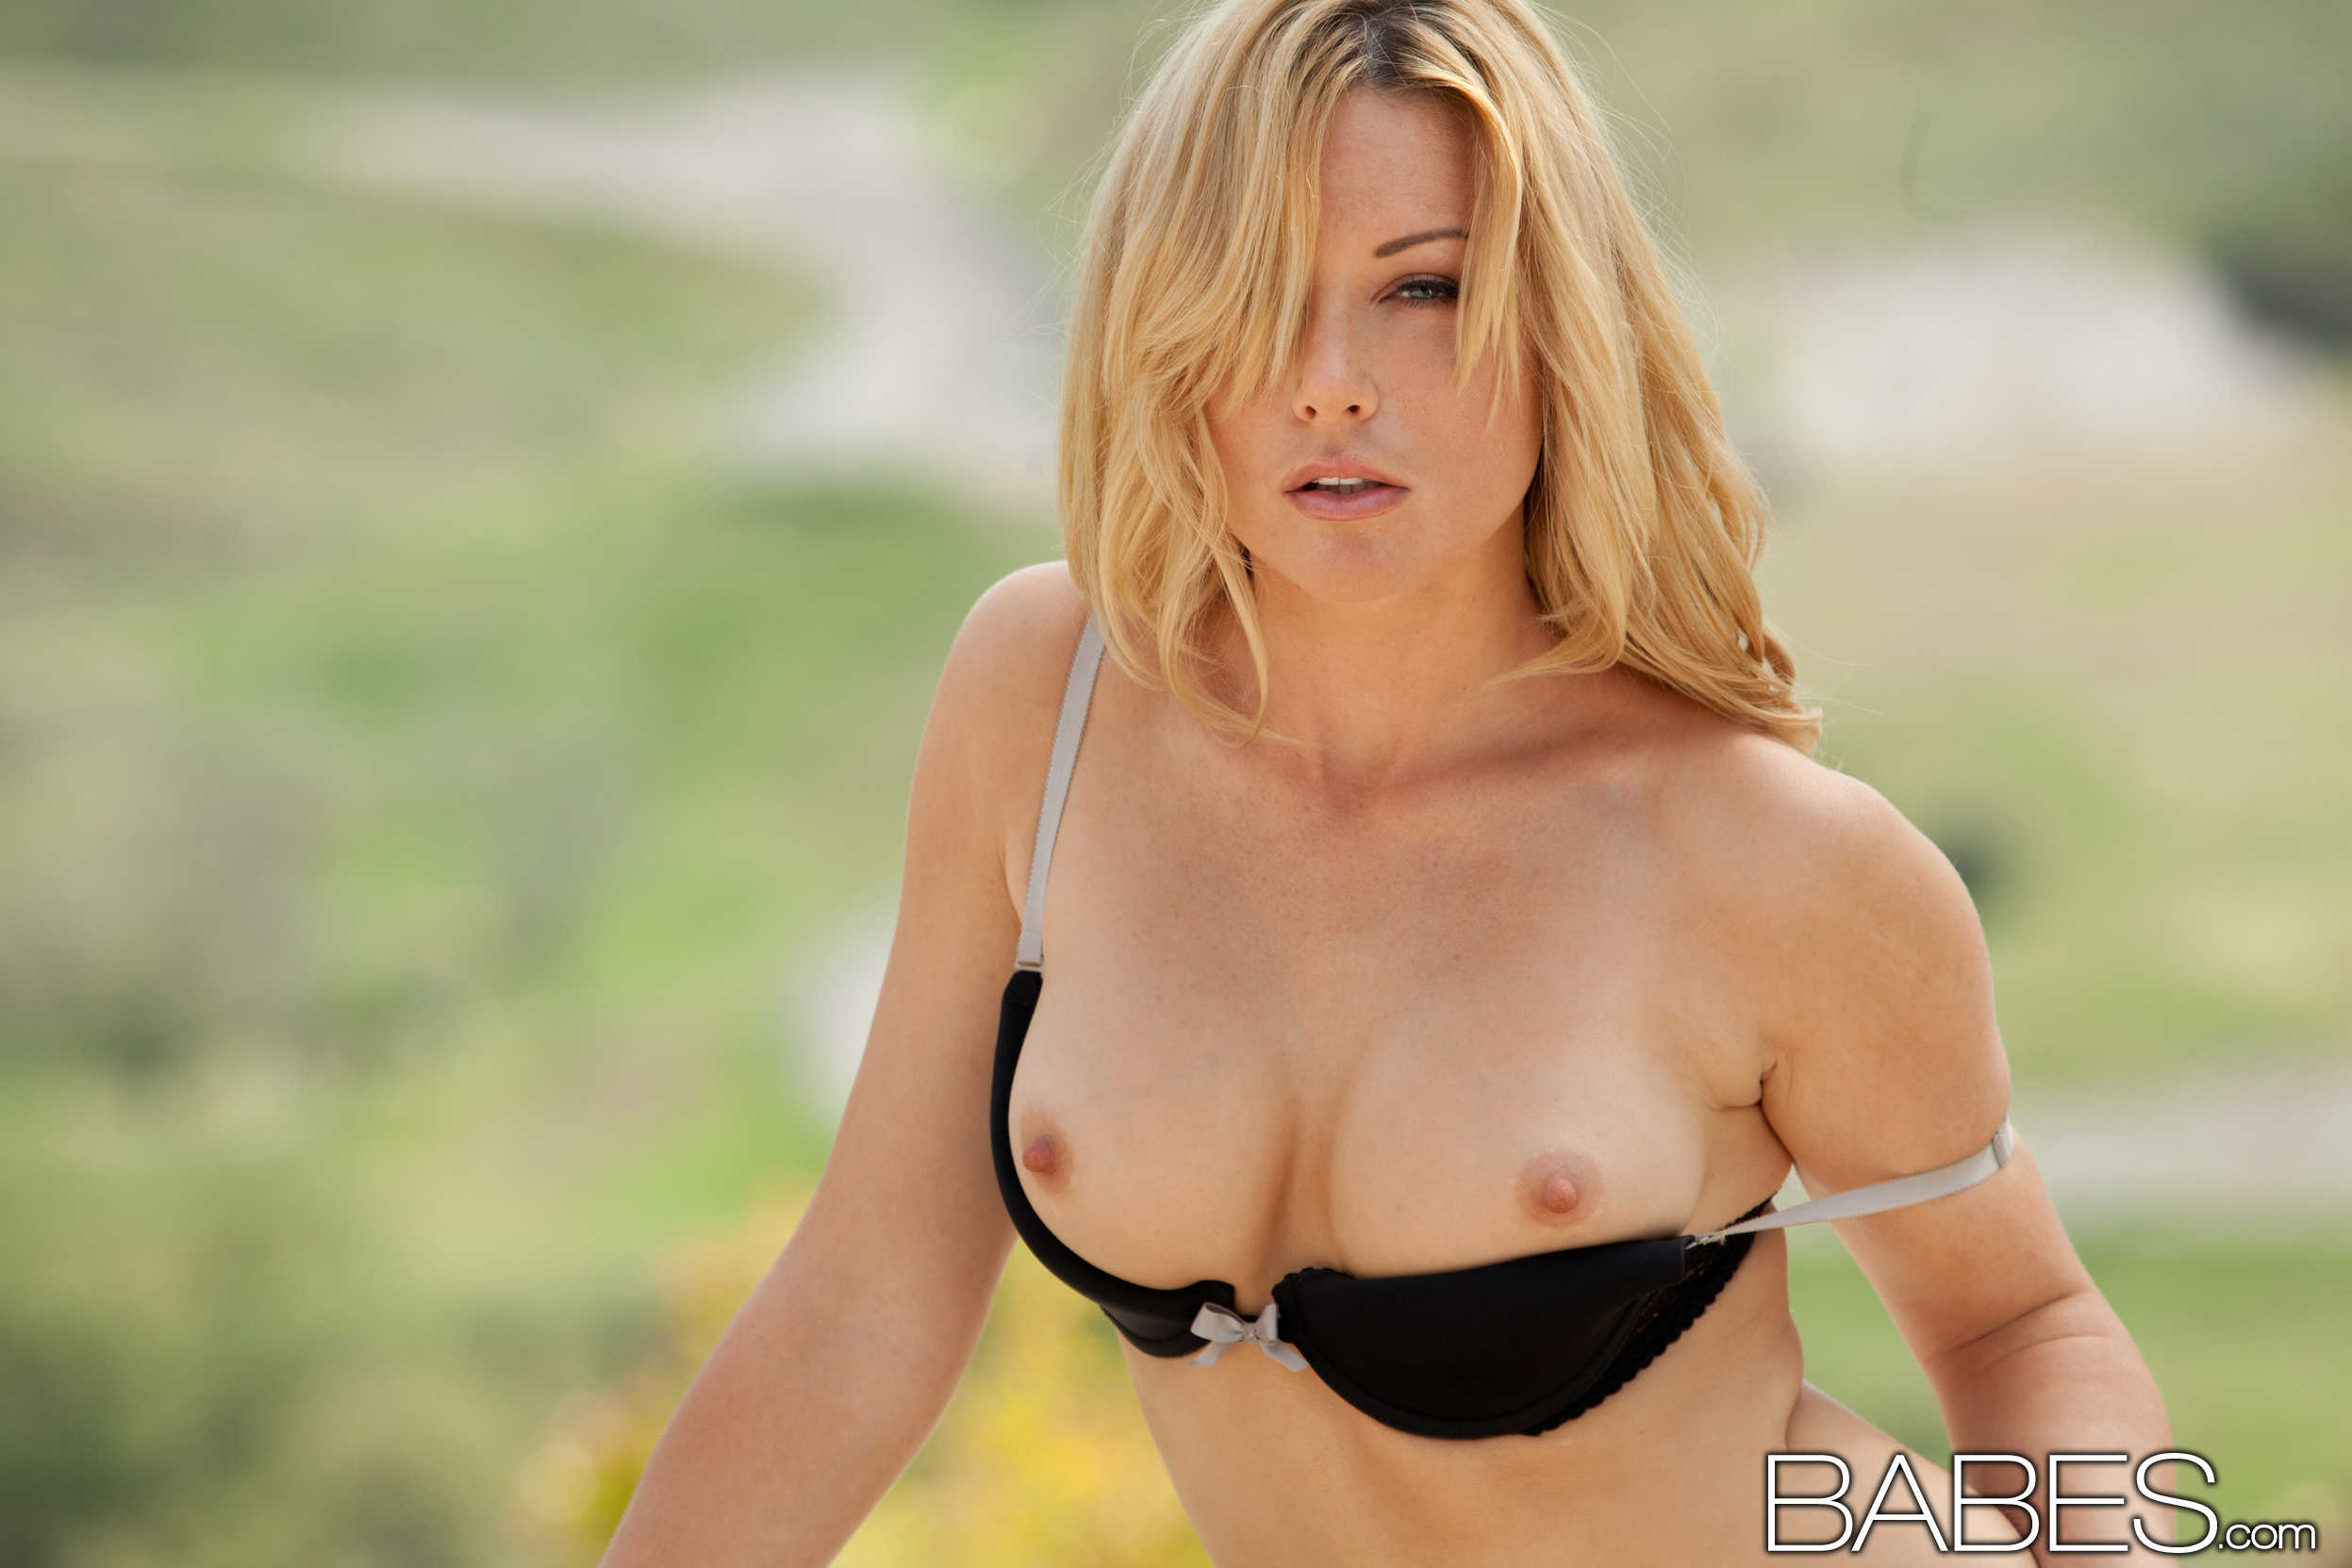 kayden kross bad biker girl with a perfect ass 3 greatnass.com_